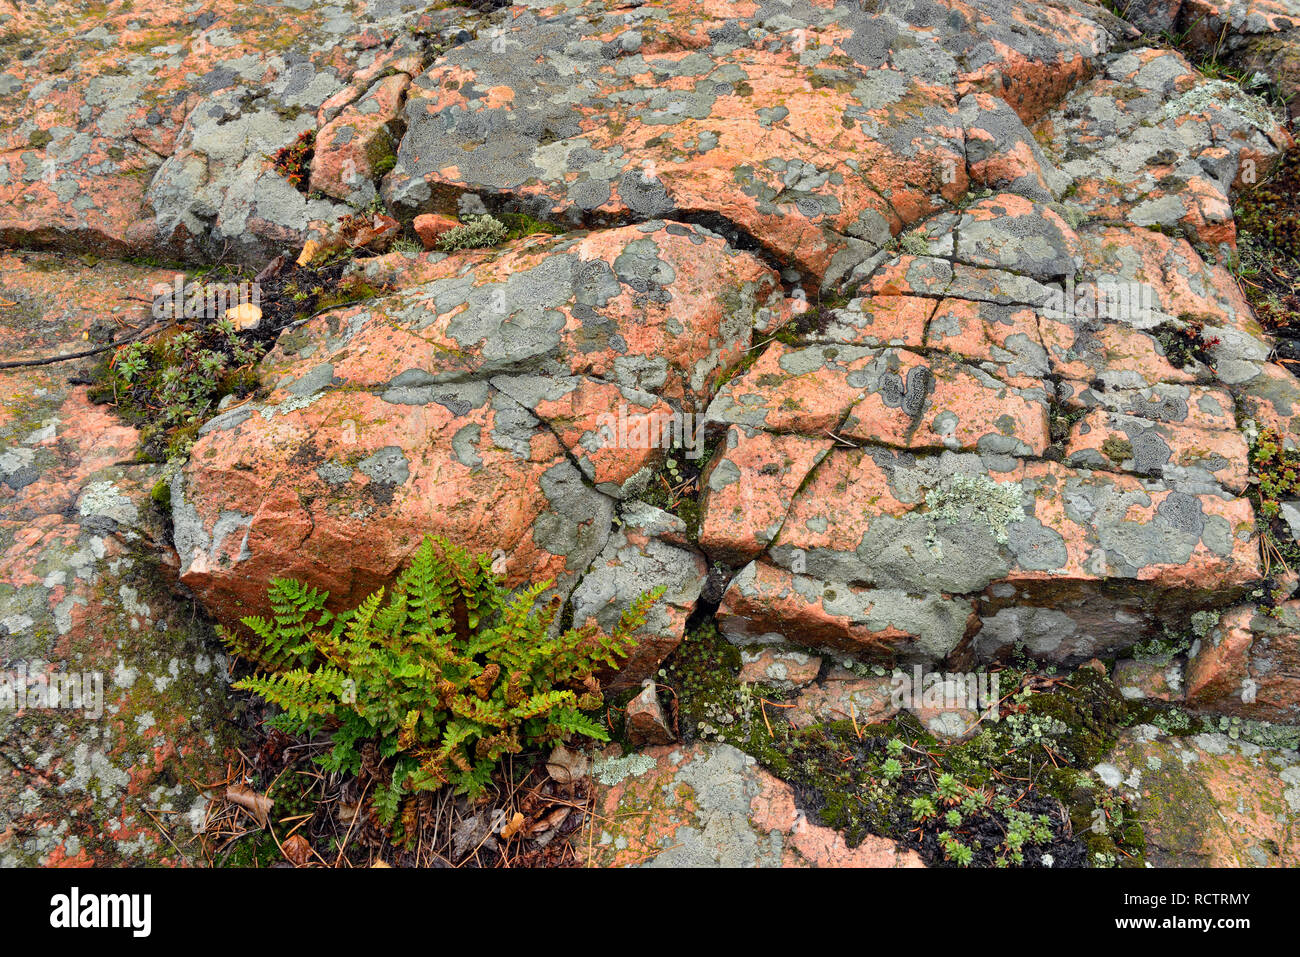 Precambrian shield granite with an orange igneous dyke, lichens and a clump of ferns, Yellowknife, Northwest Territories, Canada - Stock Image